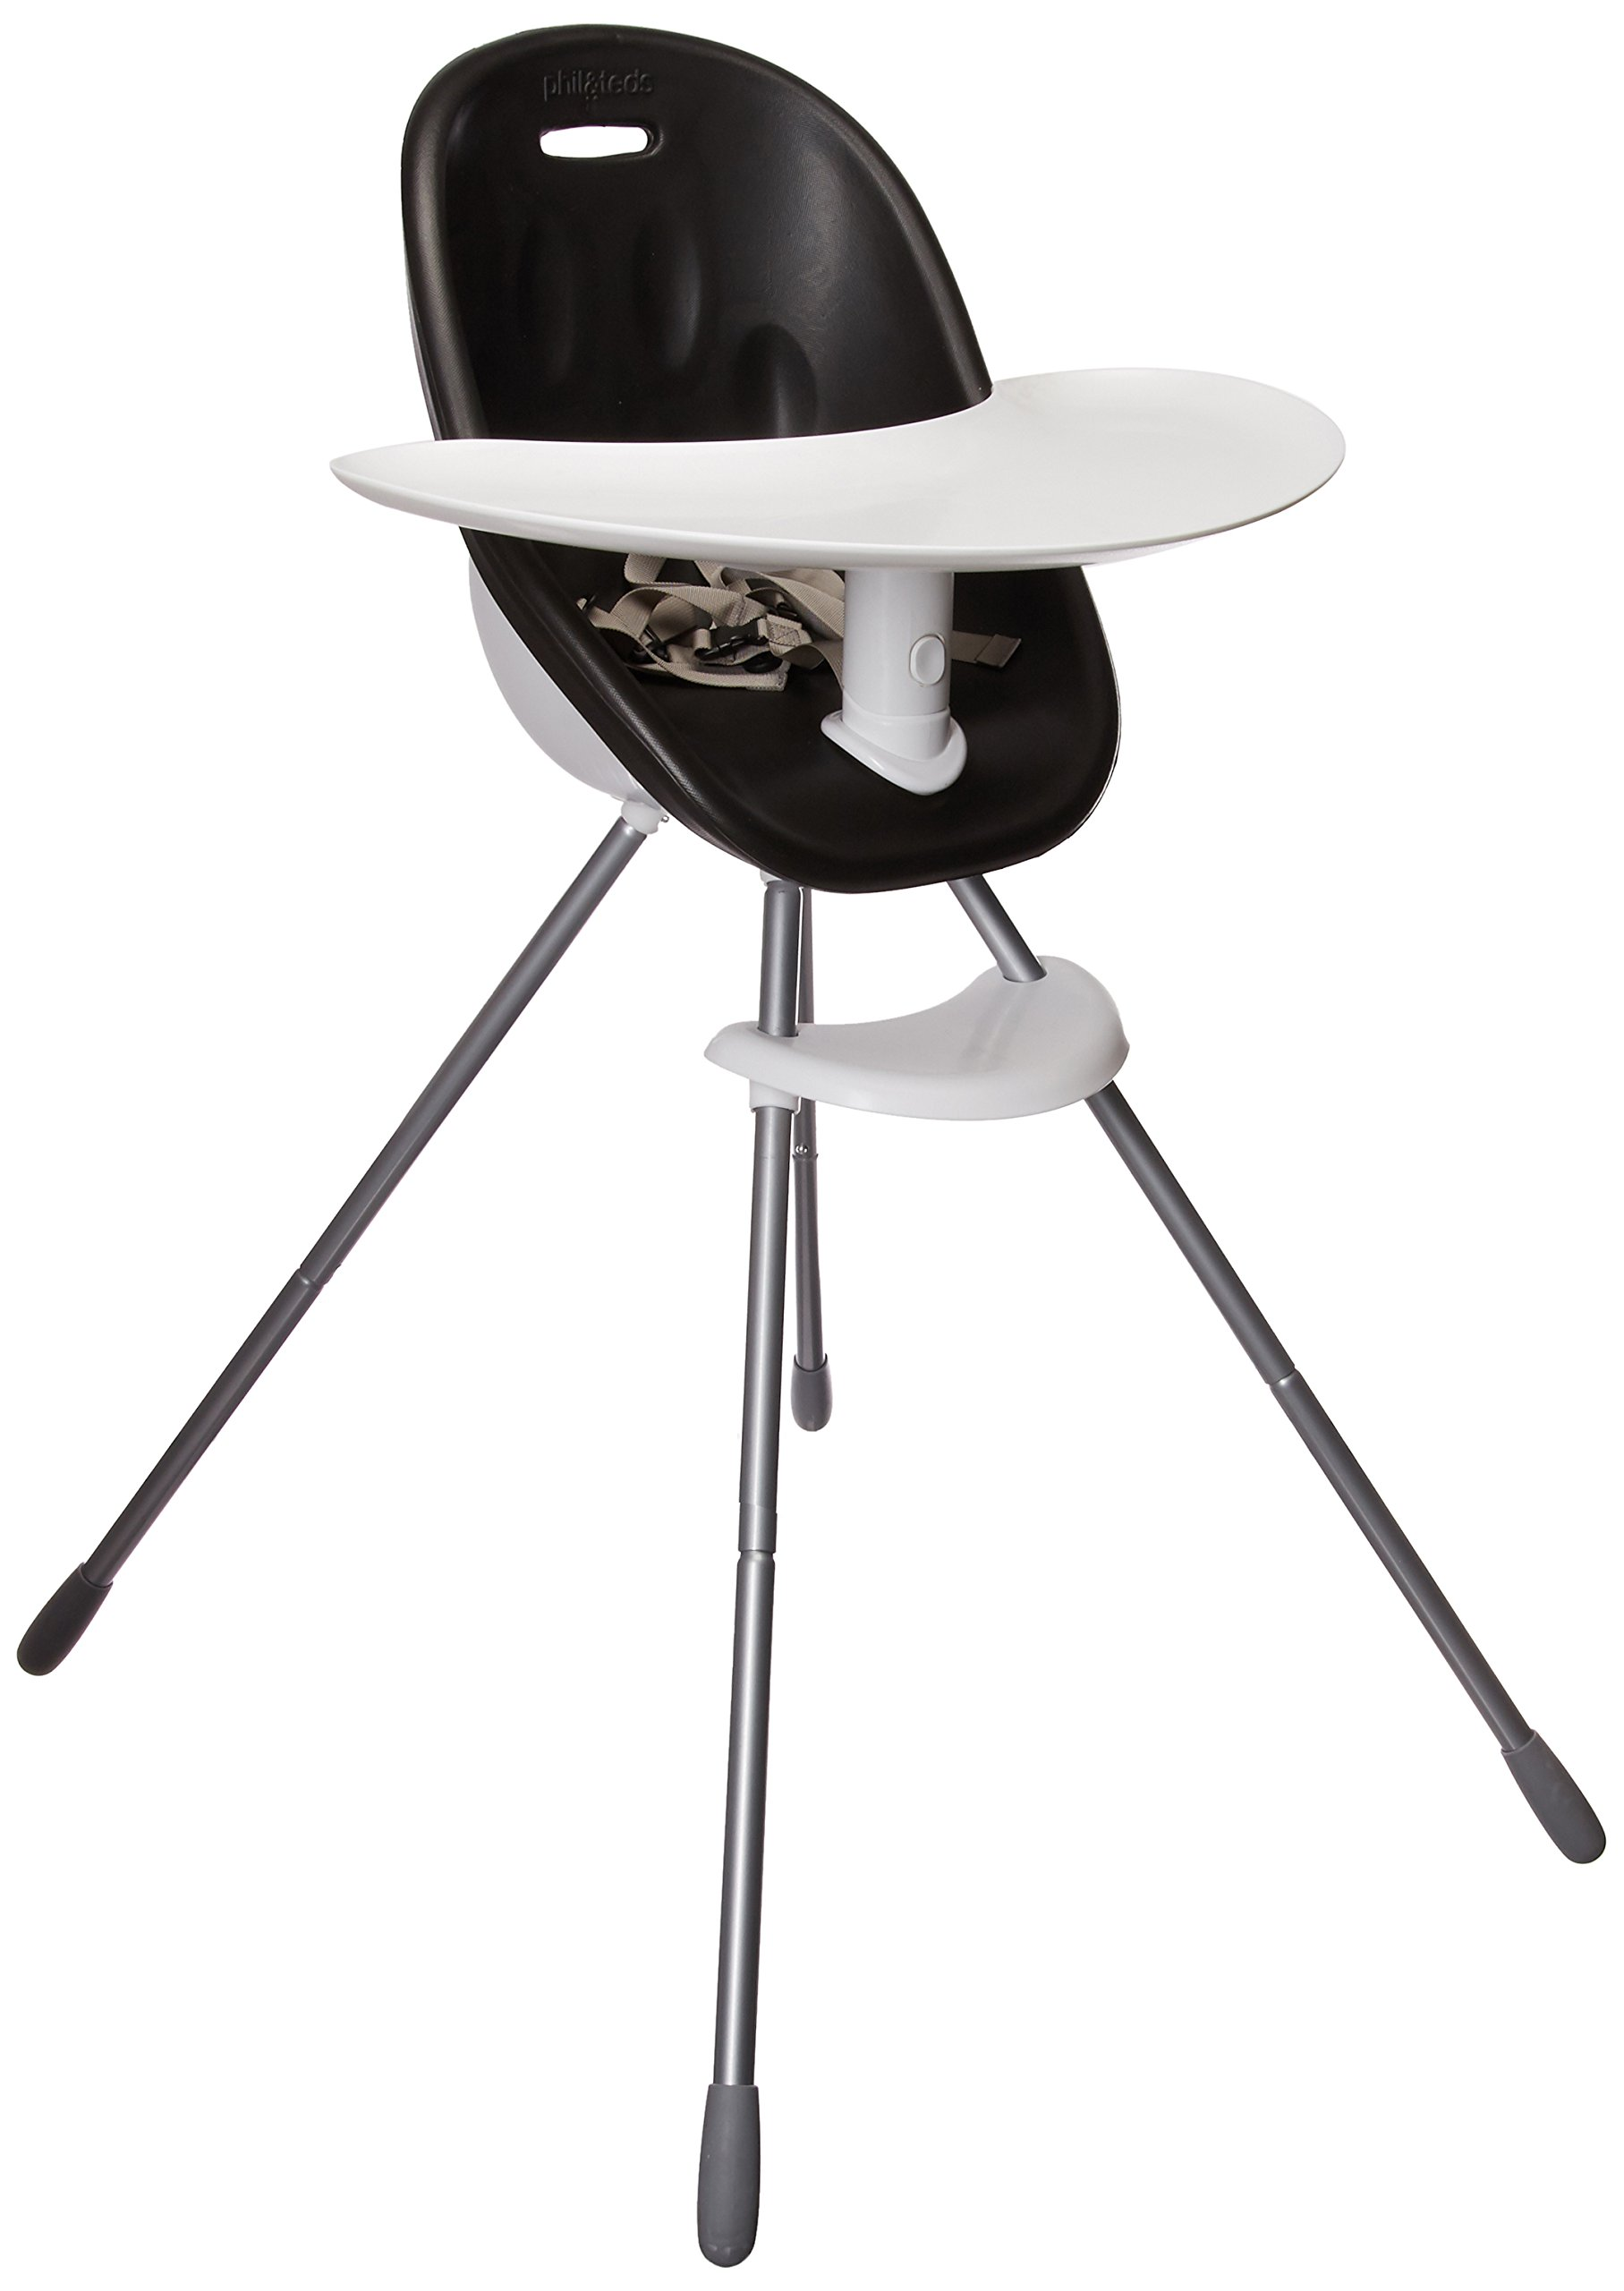 phil&teds Poppy Convertible High Chair, Black – Converts to Child Seat – Ultra-Hygenic Aerocore Seat – Seamless – Hypoallergenic – Anti-Microbial – Dishwasher Safe Tray – Easy Clean – Waterproof